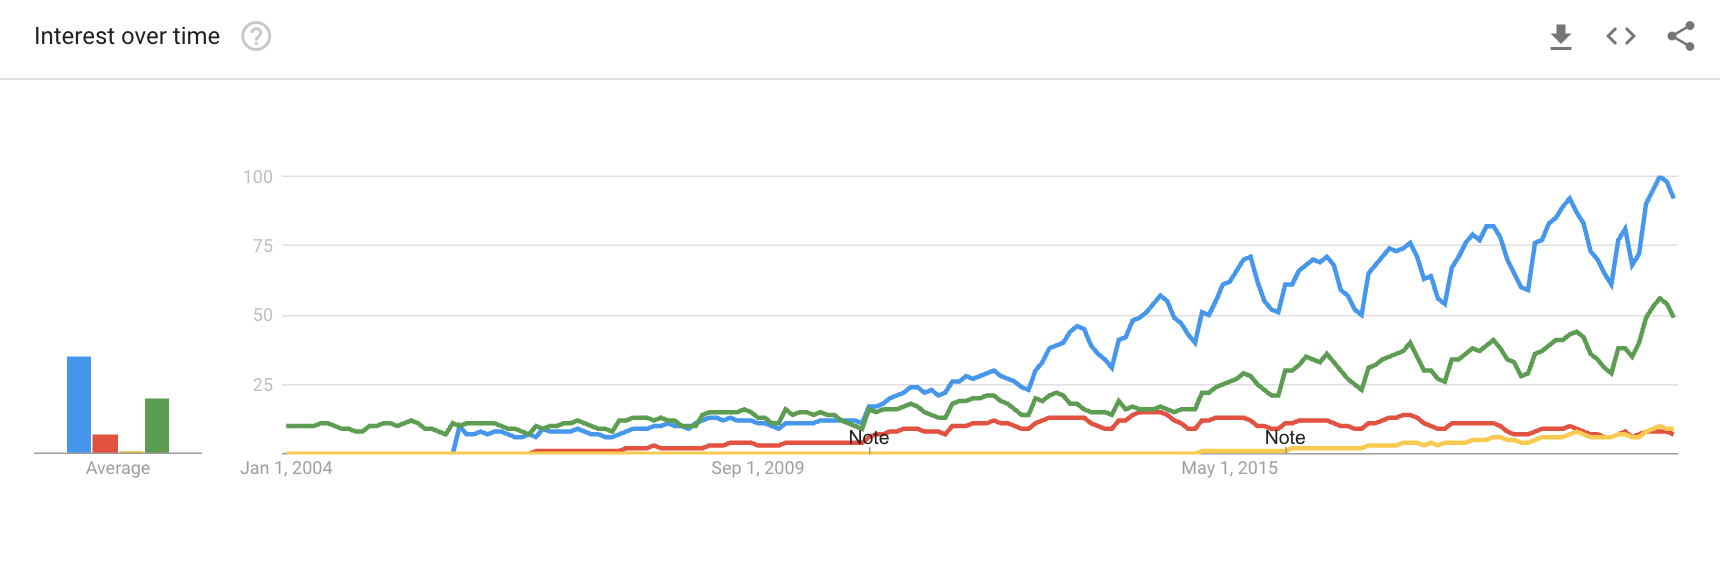 Home Buying Search Interest Over Time